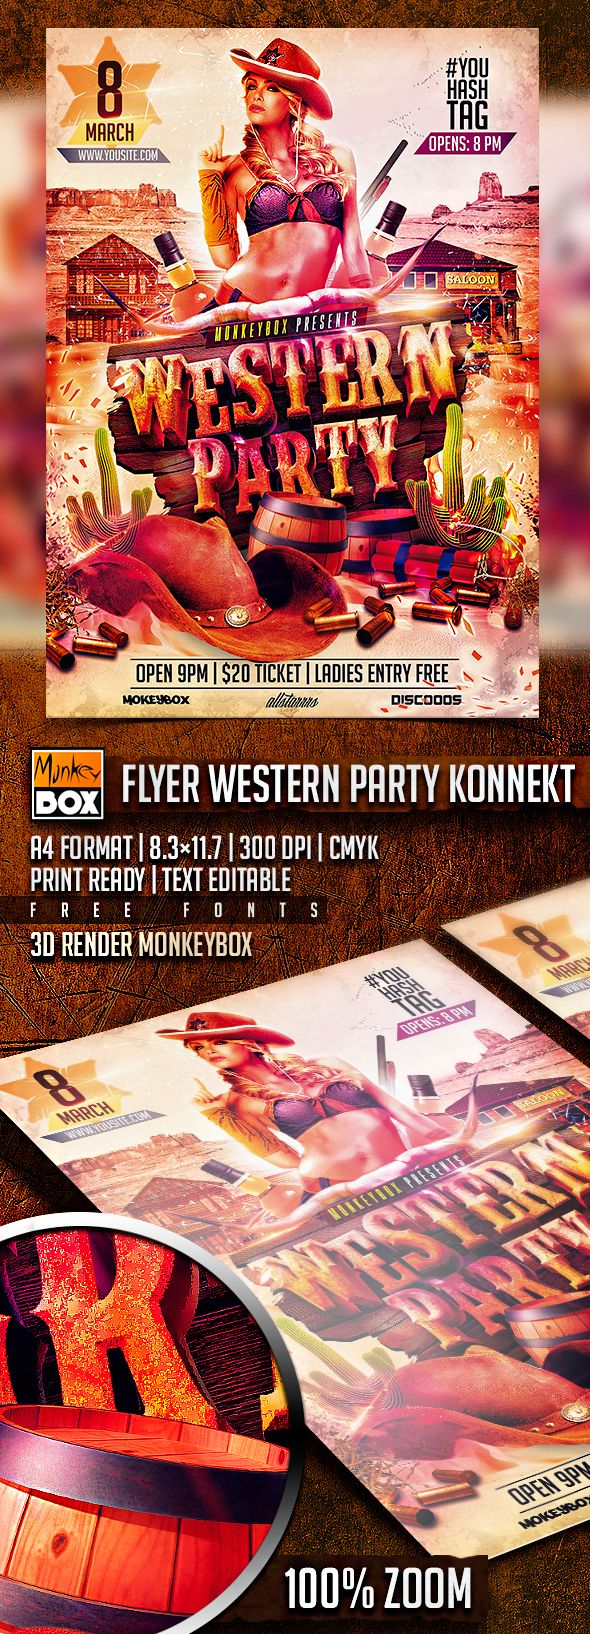 37 best Flyers & Posters images on Pinterest | Flyer template ...